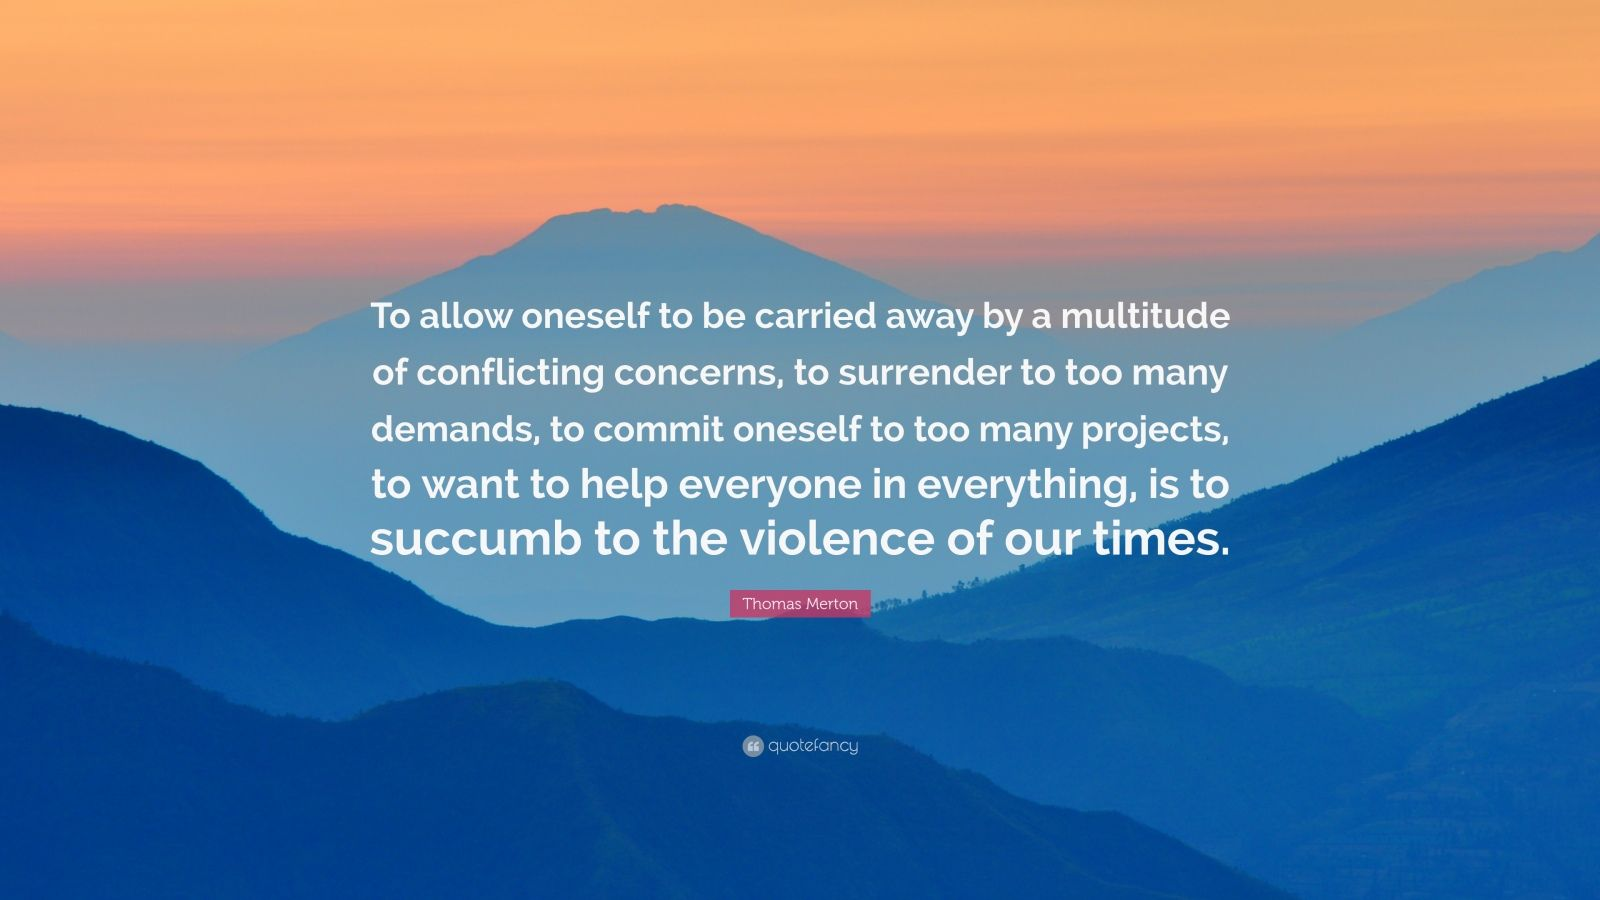 "Thomas Merton Quote: ""To allow oneself to be carried away by a multitude of conflicting concerns, to surrender to too many demands, to commit oneself to too many projects, to want to help everyone in everything, is to succumb to the violence of our times."""